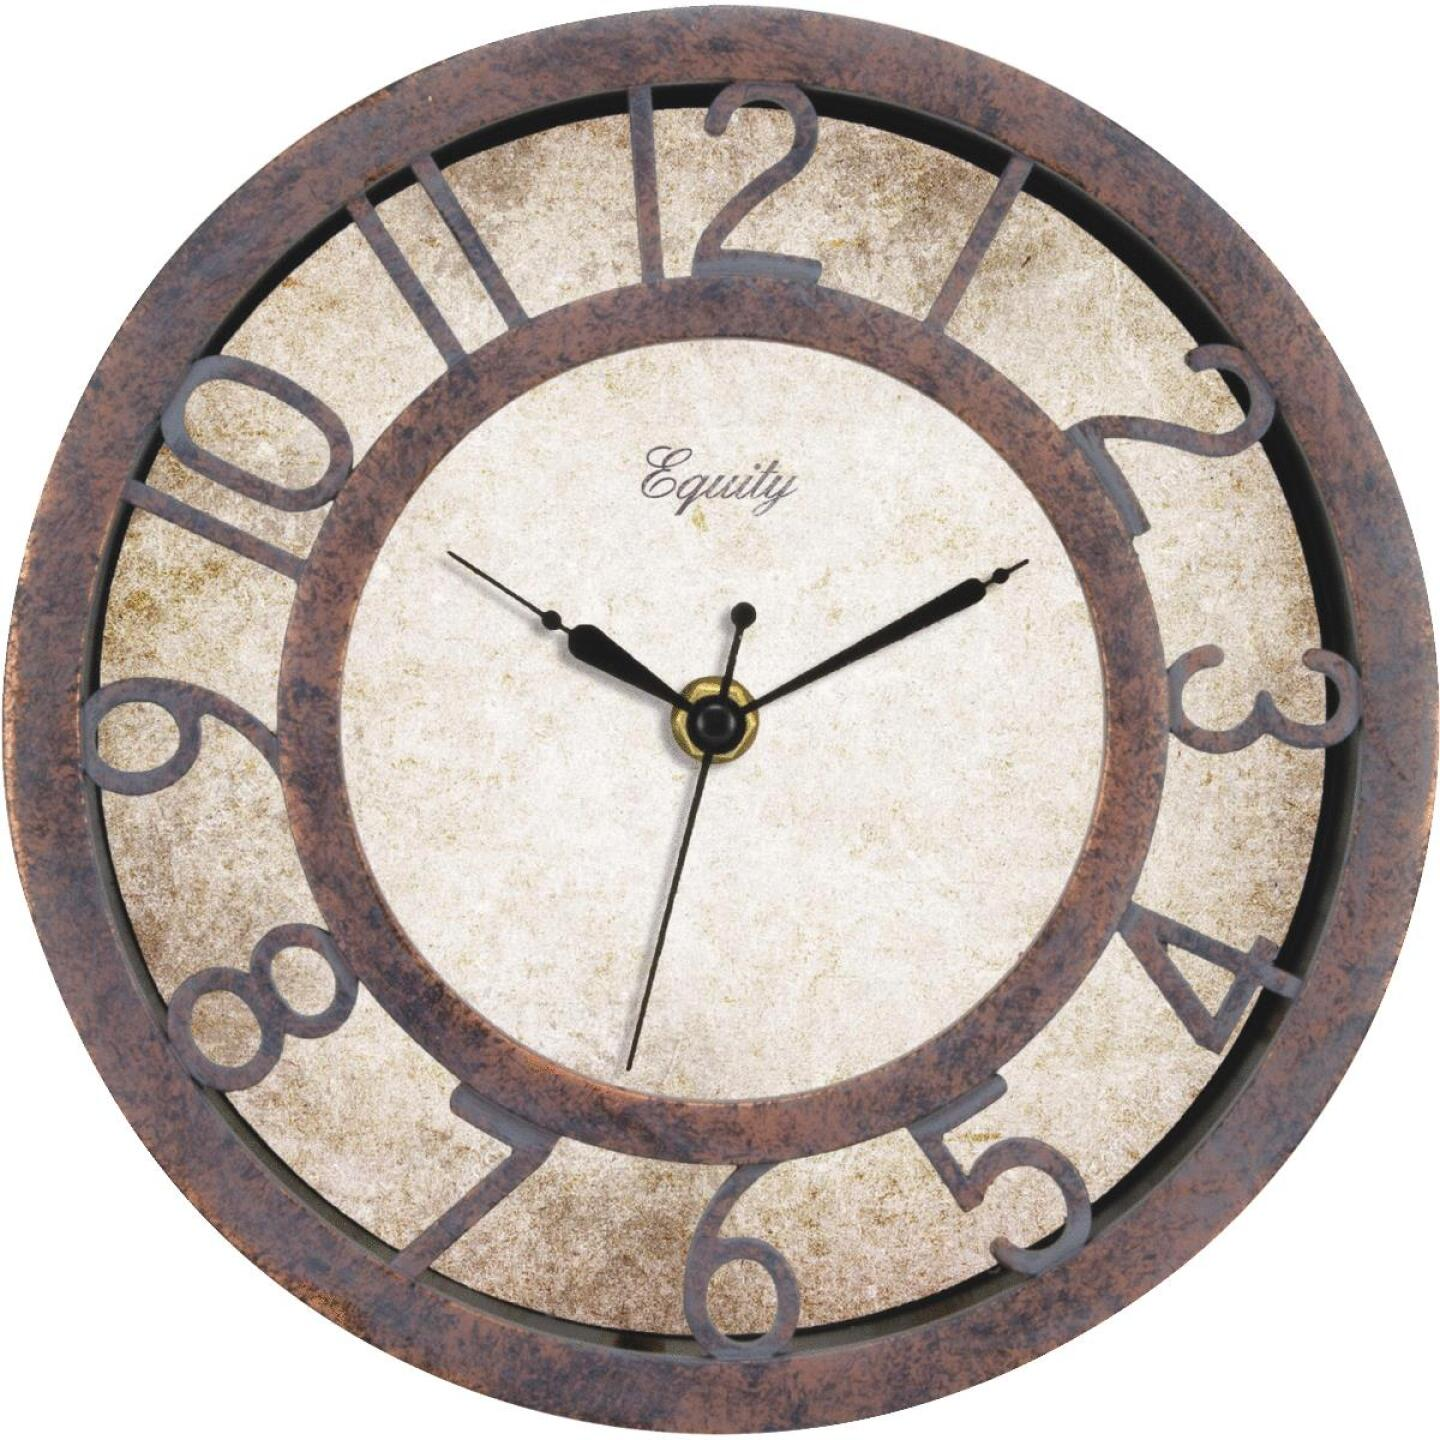 La Crosse Technology Equity Antique Finish Plastic Wall Clock Image 1